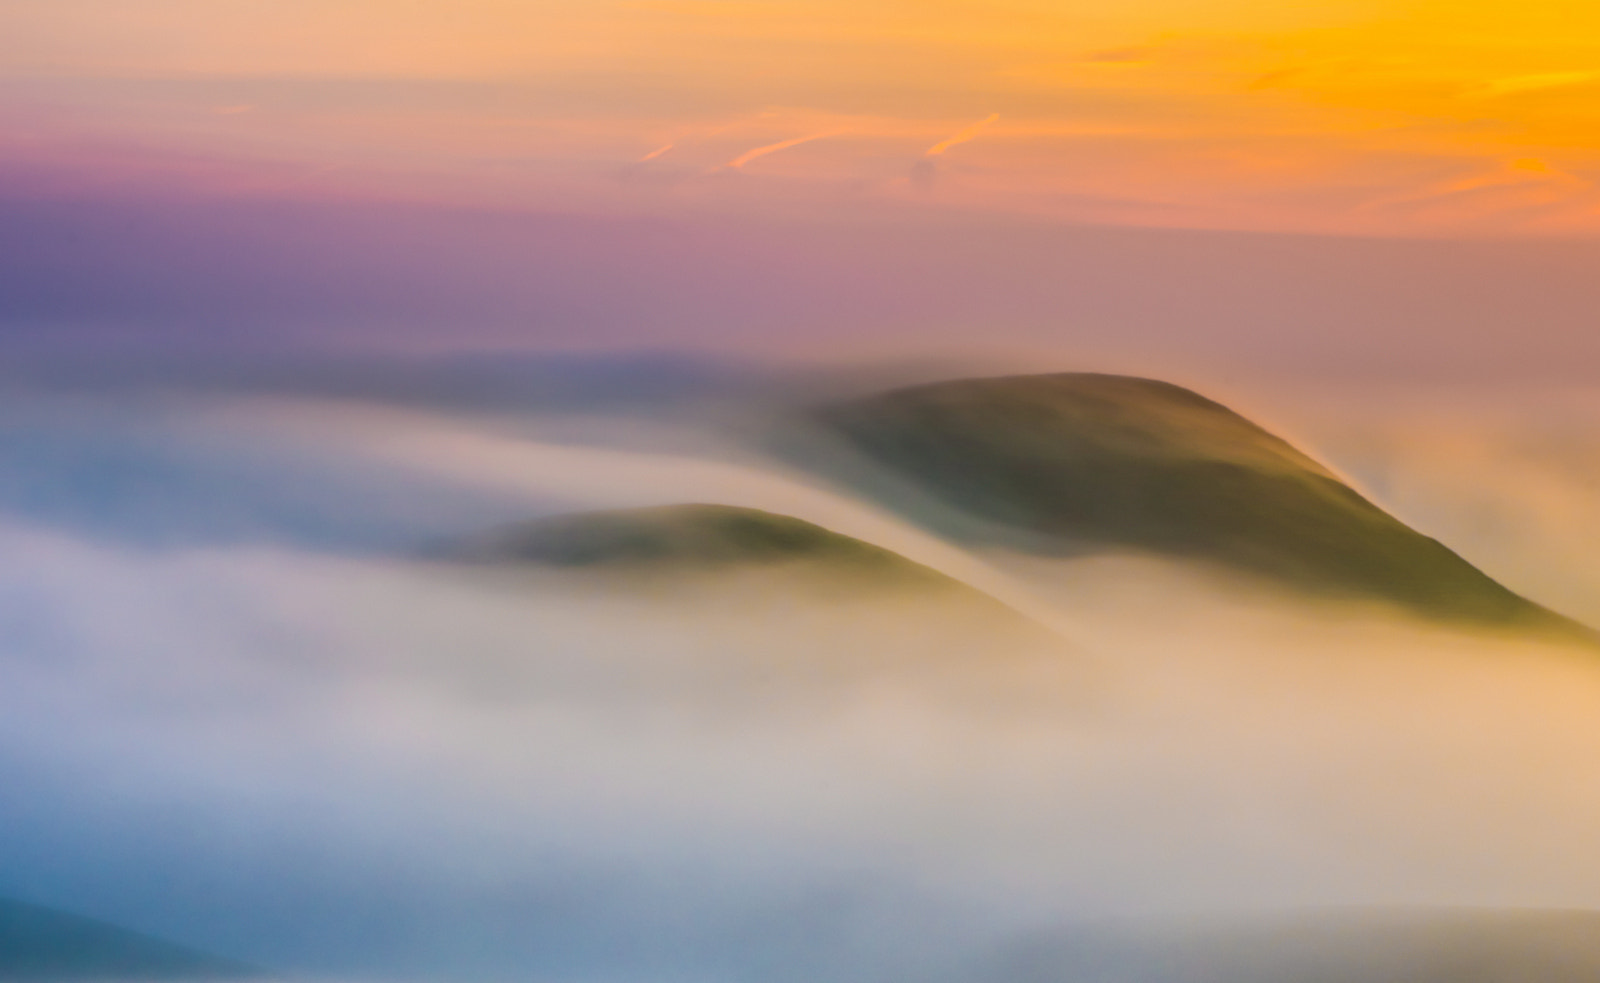 Photograph fog flow at sunrise by marc crumpler on 500px